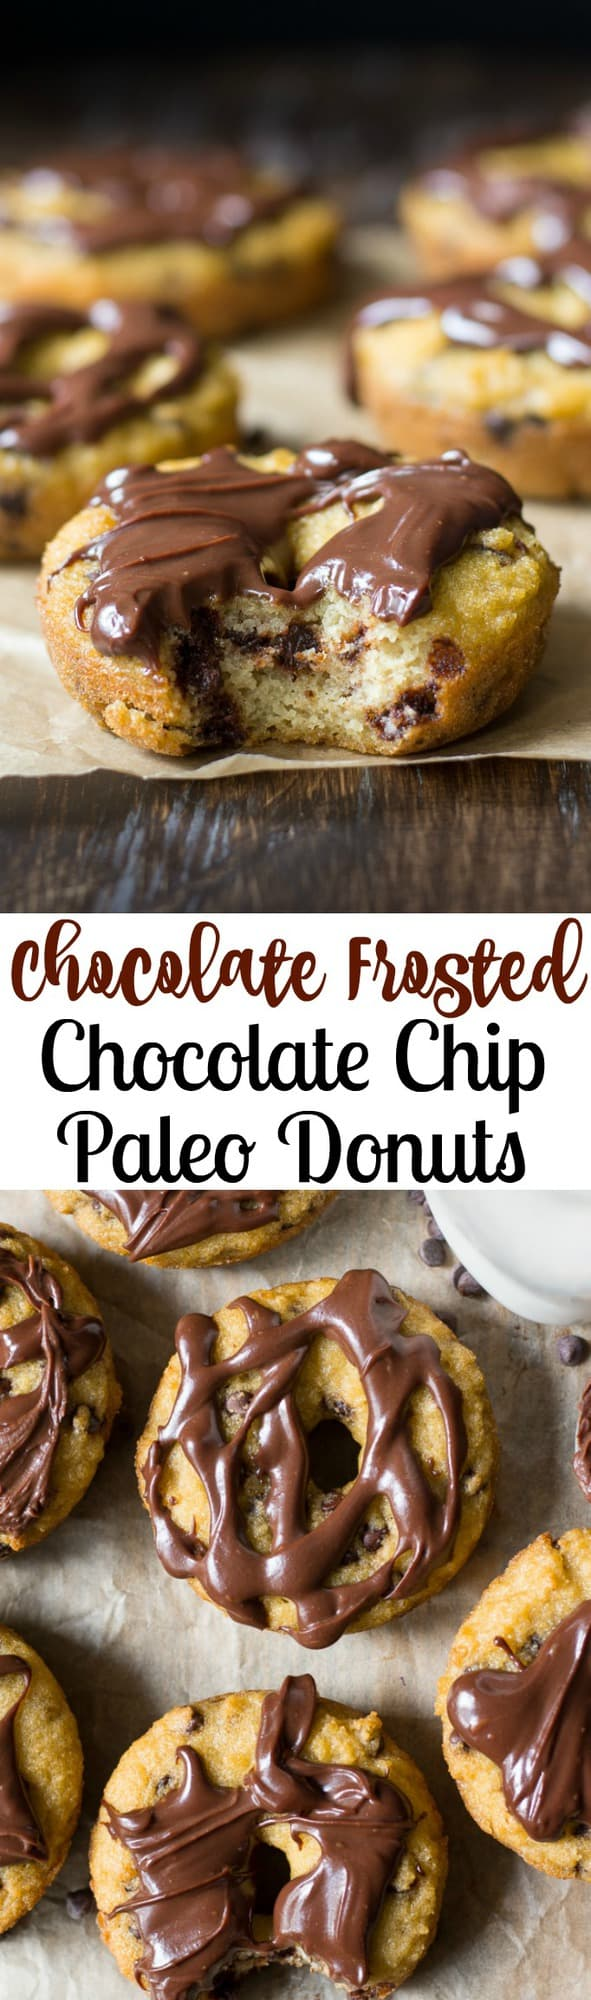 Grain Free and Paleo donuts with chocolate chips and rich chocolate ganache frosting